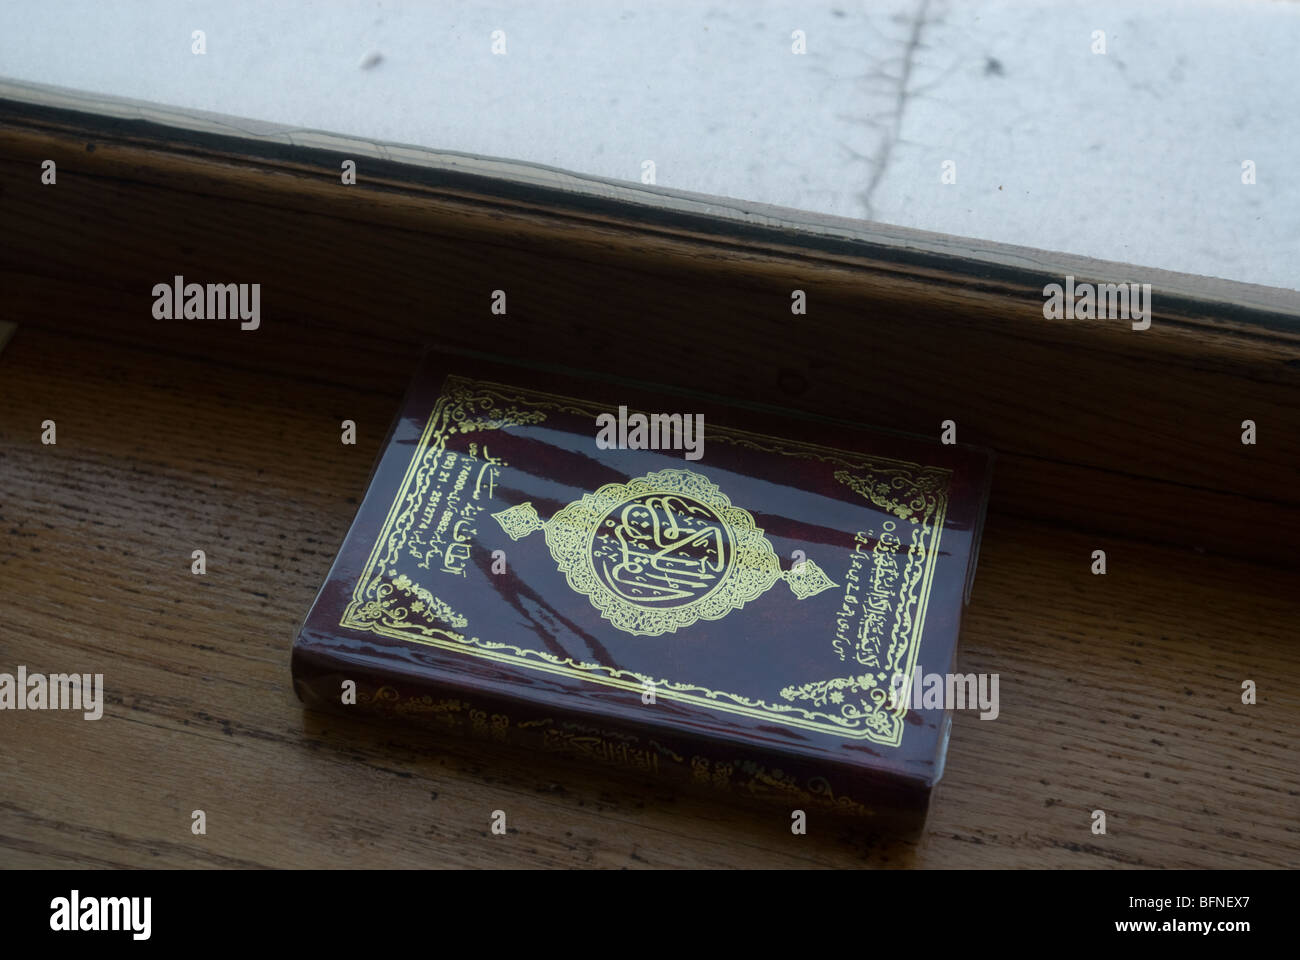 A copy of the Koran at the Muslim Center of New York in Flushing, Queens in New York - Stock Image